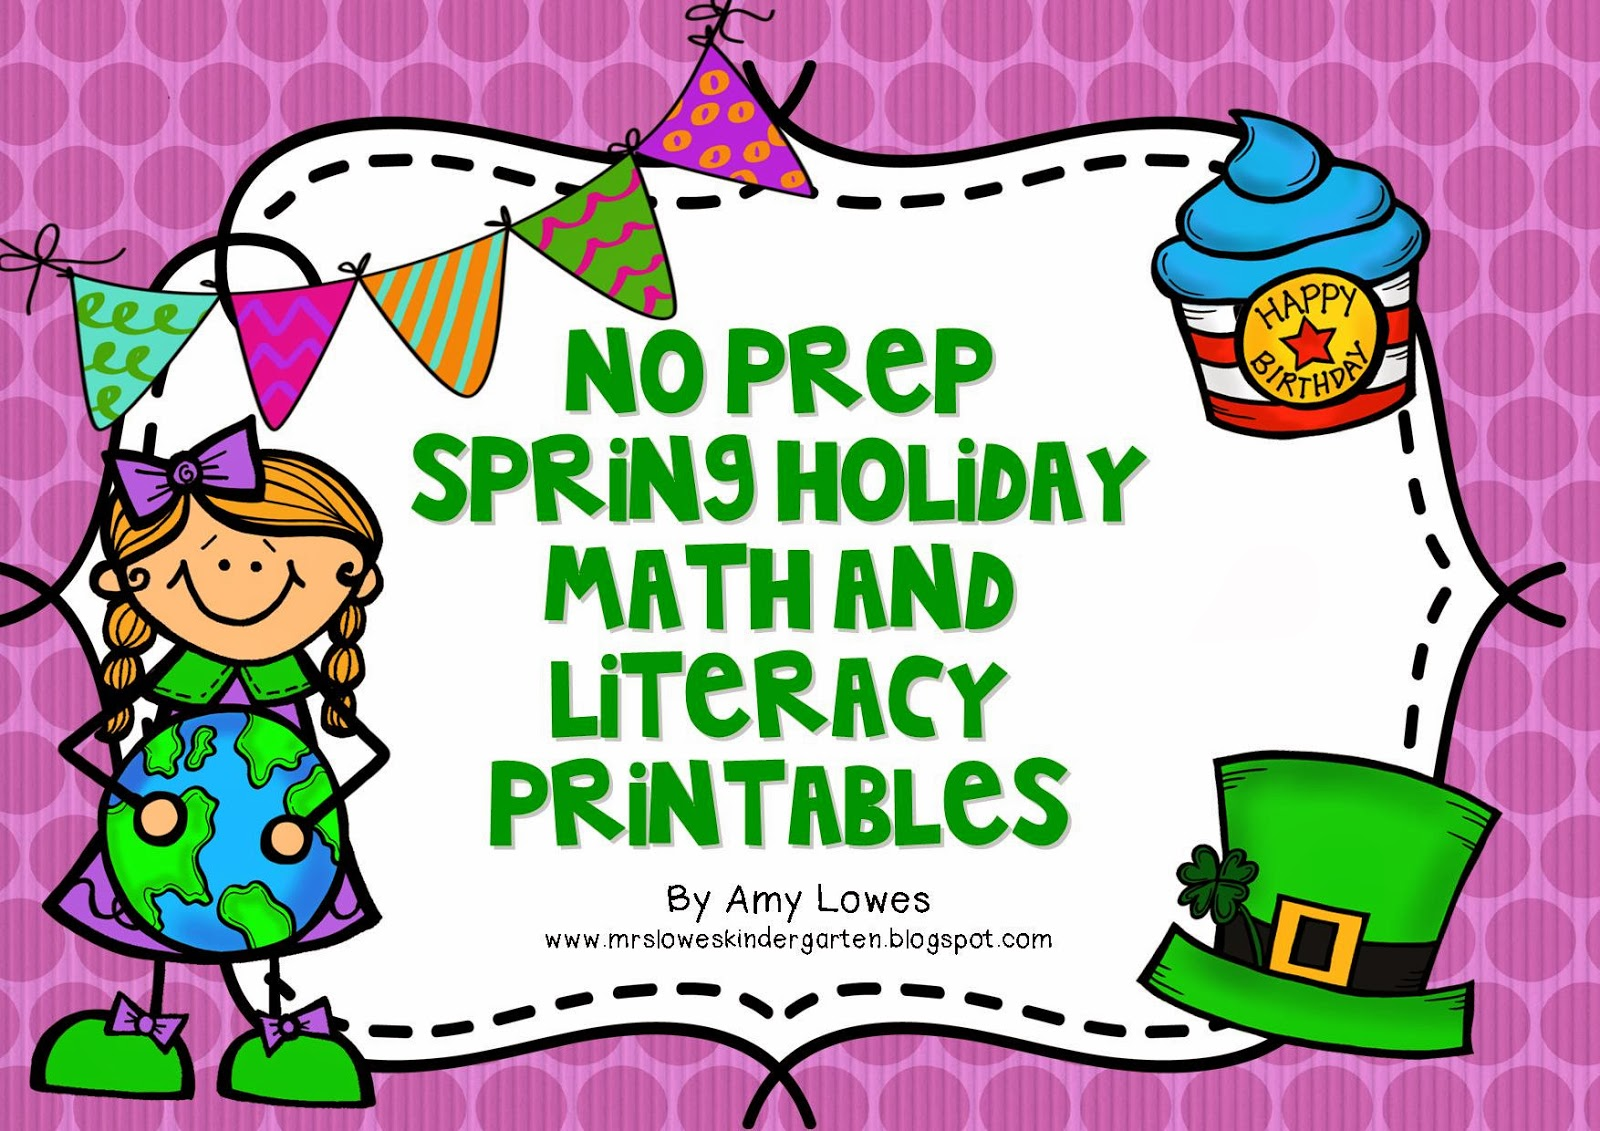 http://www.teacherspayteachers.com/Product/No-Prep-Spring-Holiday-Math-and-Literacy-Printables-1119492